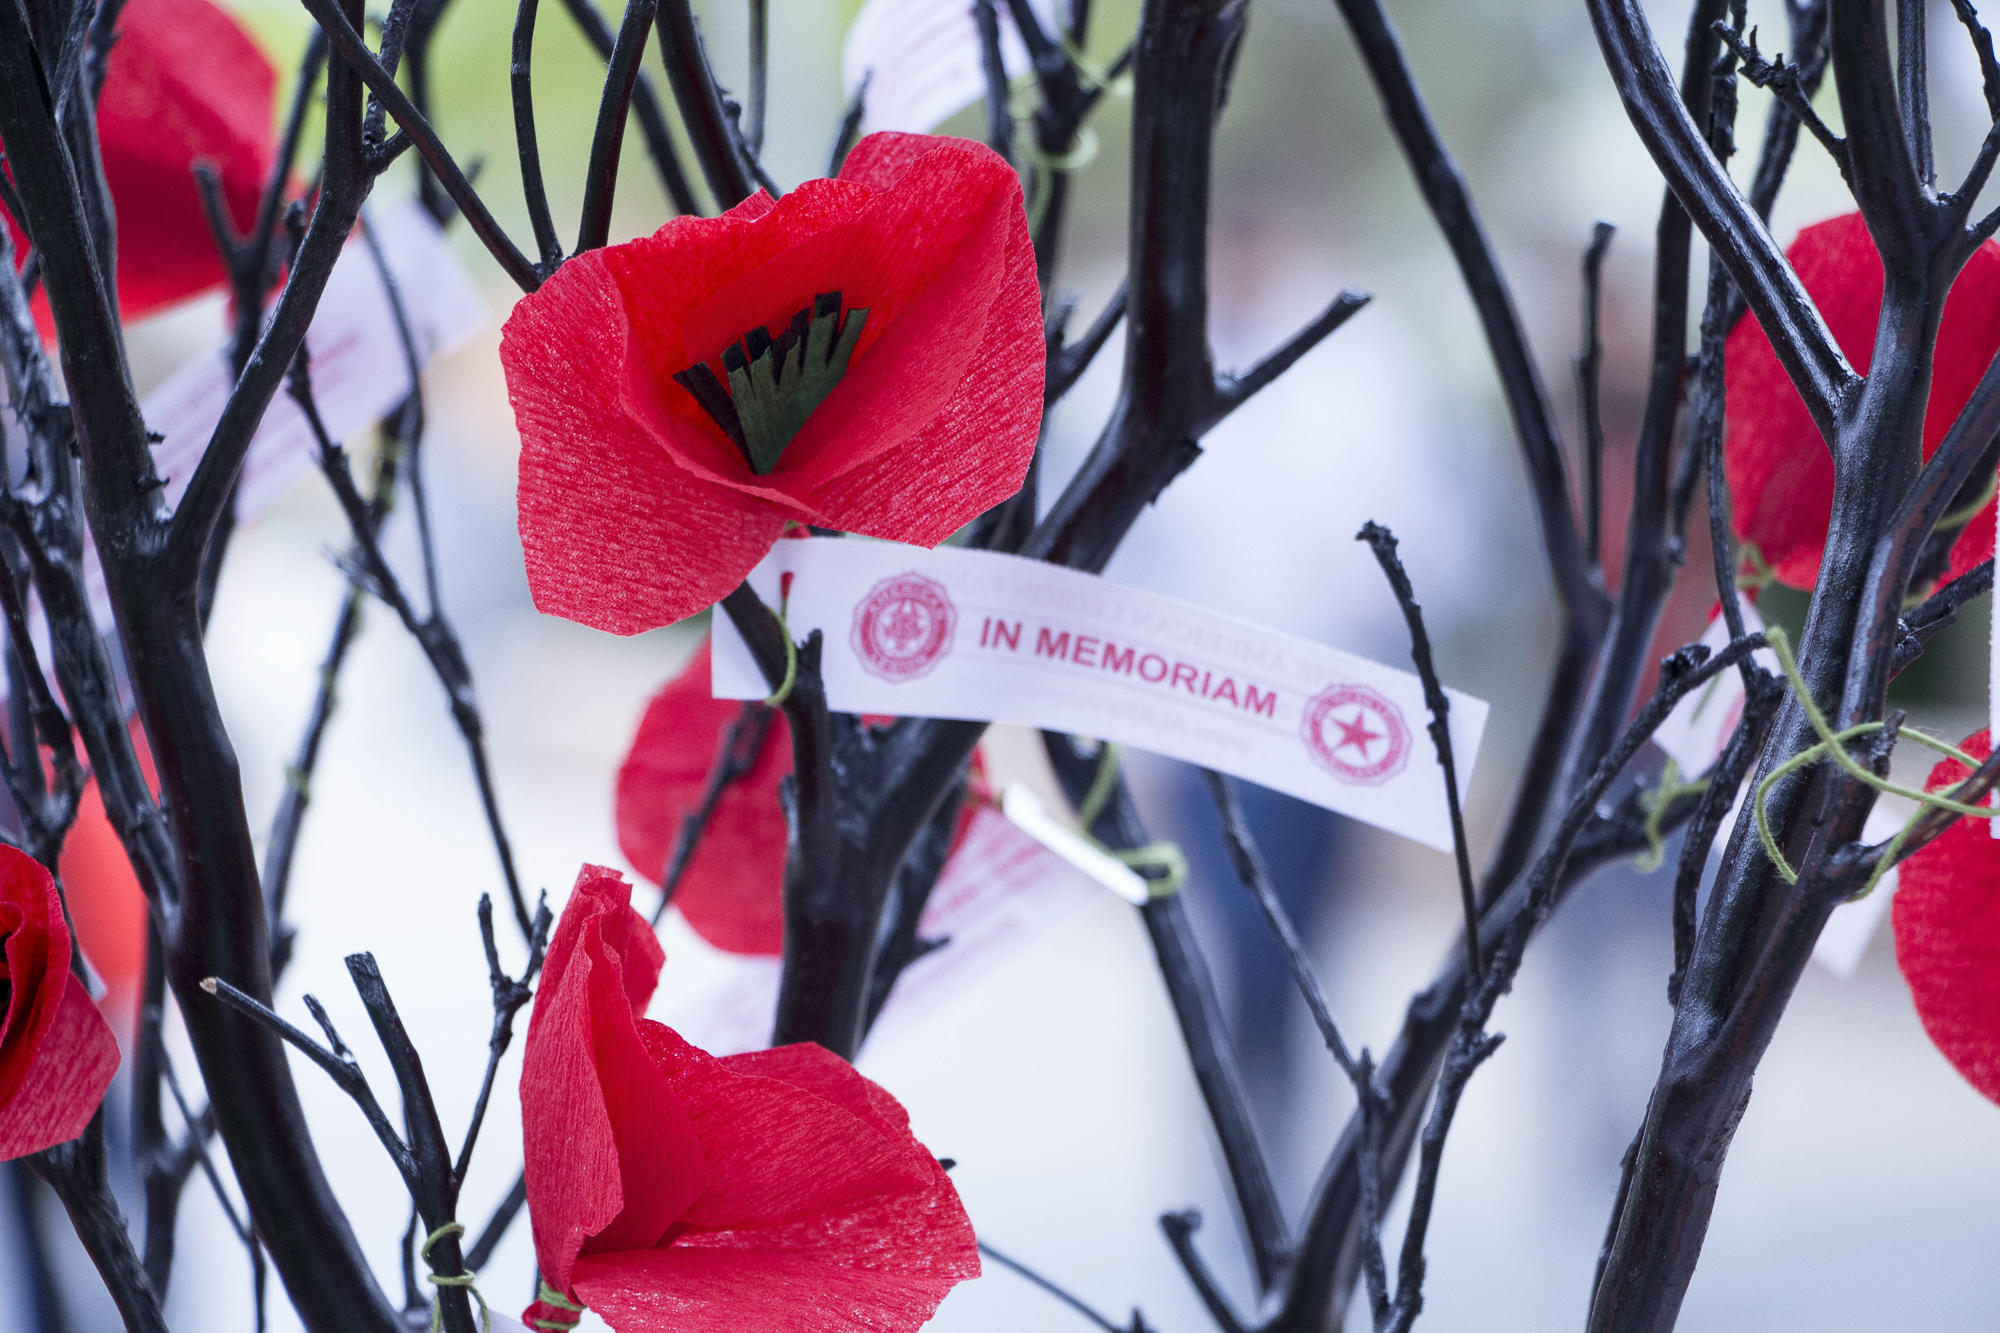 """Handmade red poppies, the official symbol of rememberance inspired by John Macrea's poem """"In Flanders' Fields"""" at Santa Monica College's Memorial Day Commemoration in Santa Monica, California on Thursaday May 24, 2018 (Wilson Gomez/Corsair Photo)"""